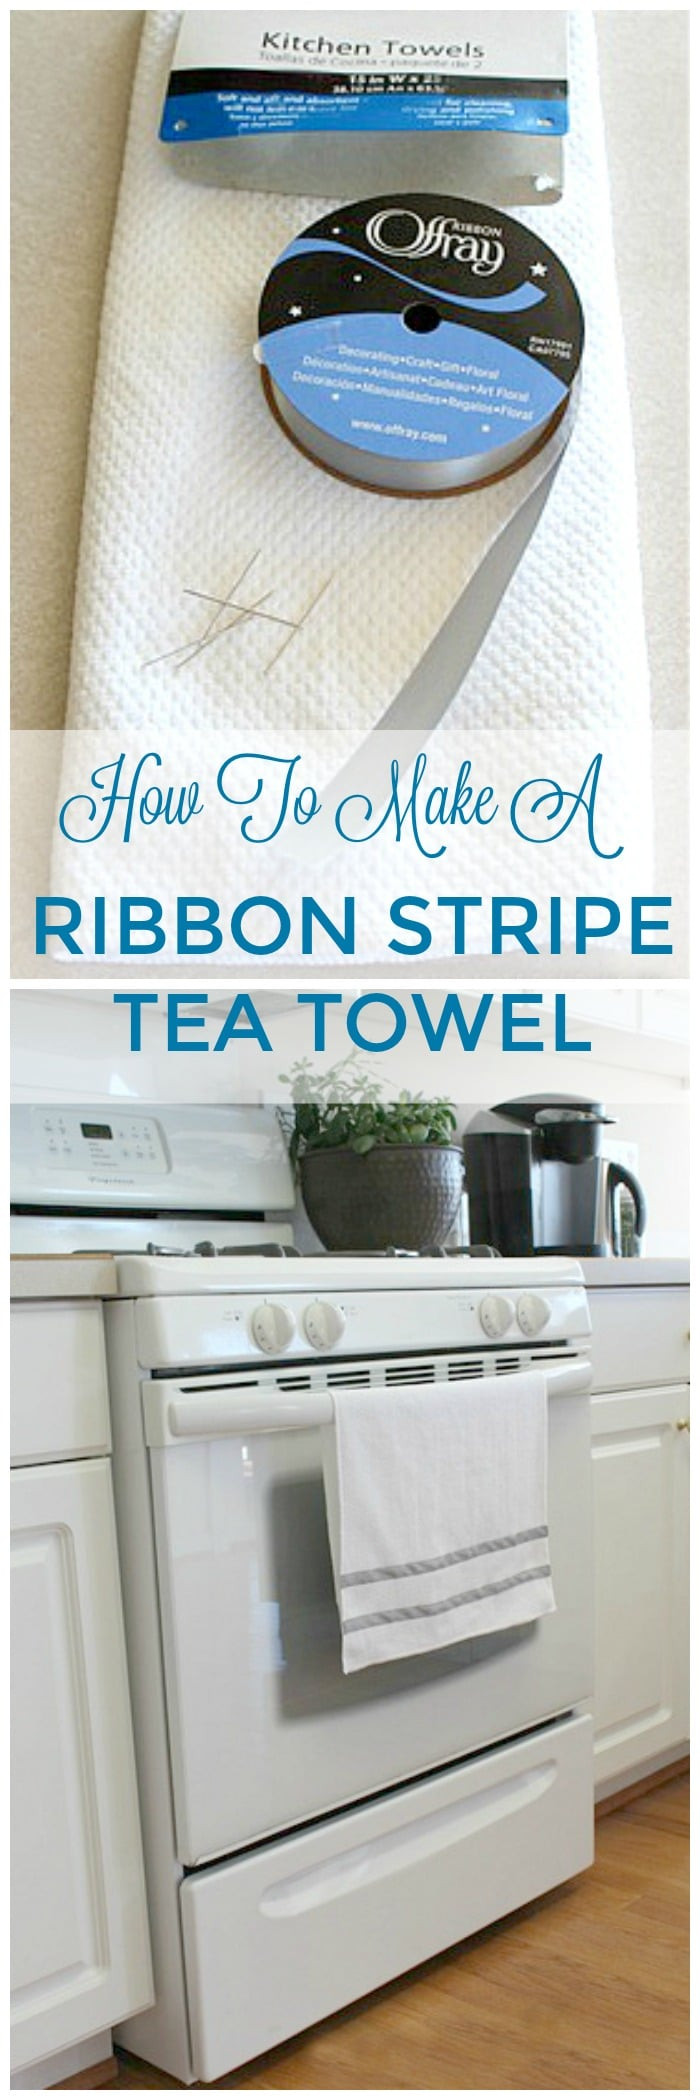 Make these pretty DIY Ribbon Stripe Tea Towels to decorate your kitchen - so quick and easy to make with this tutorial, supply list and instructions. These gorgeous kitchen towels are a great gift idea too!